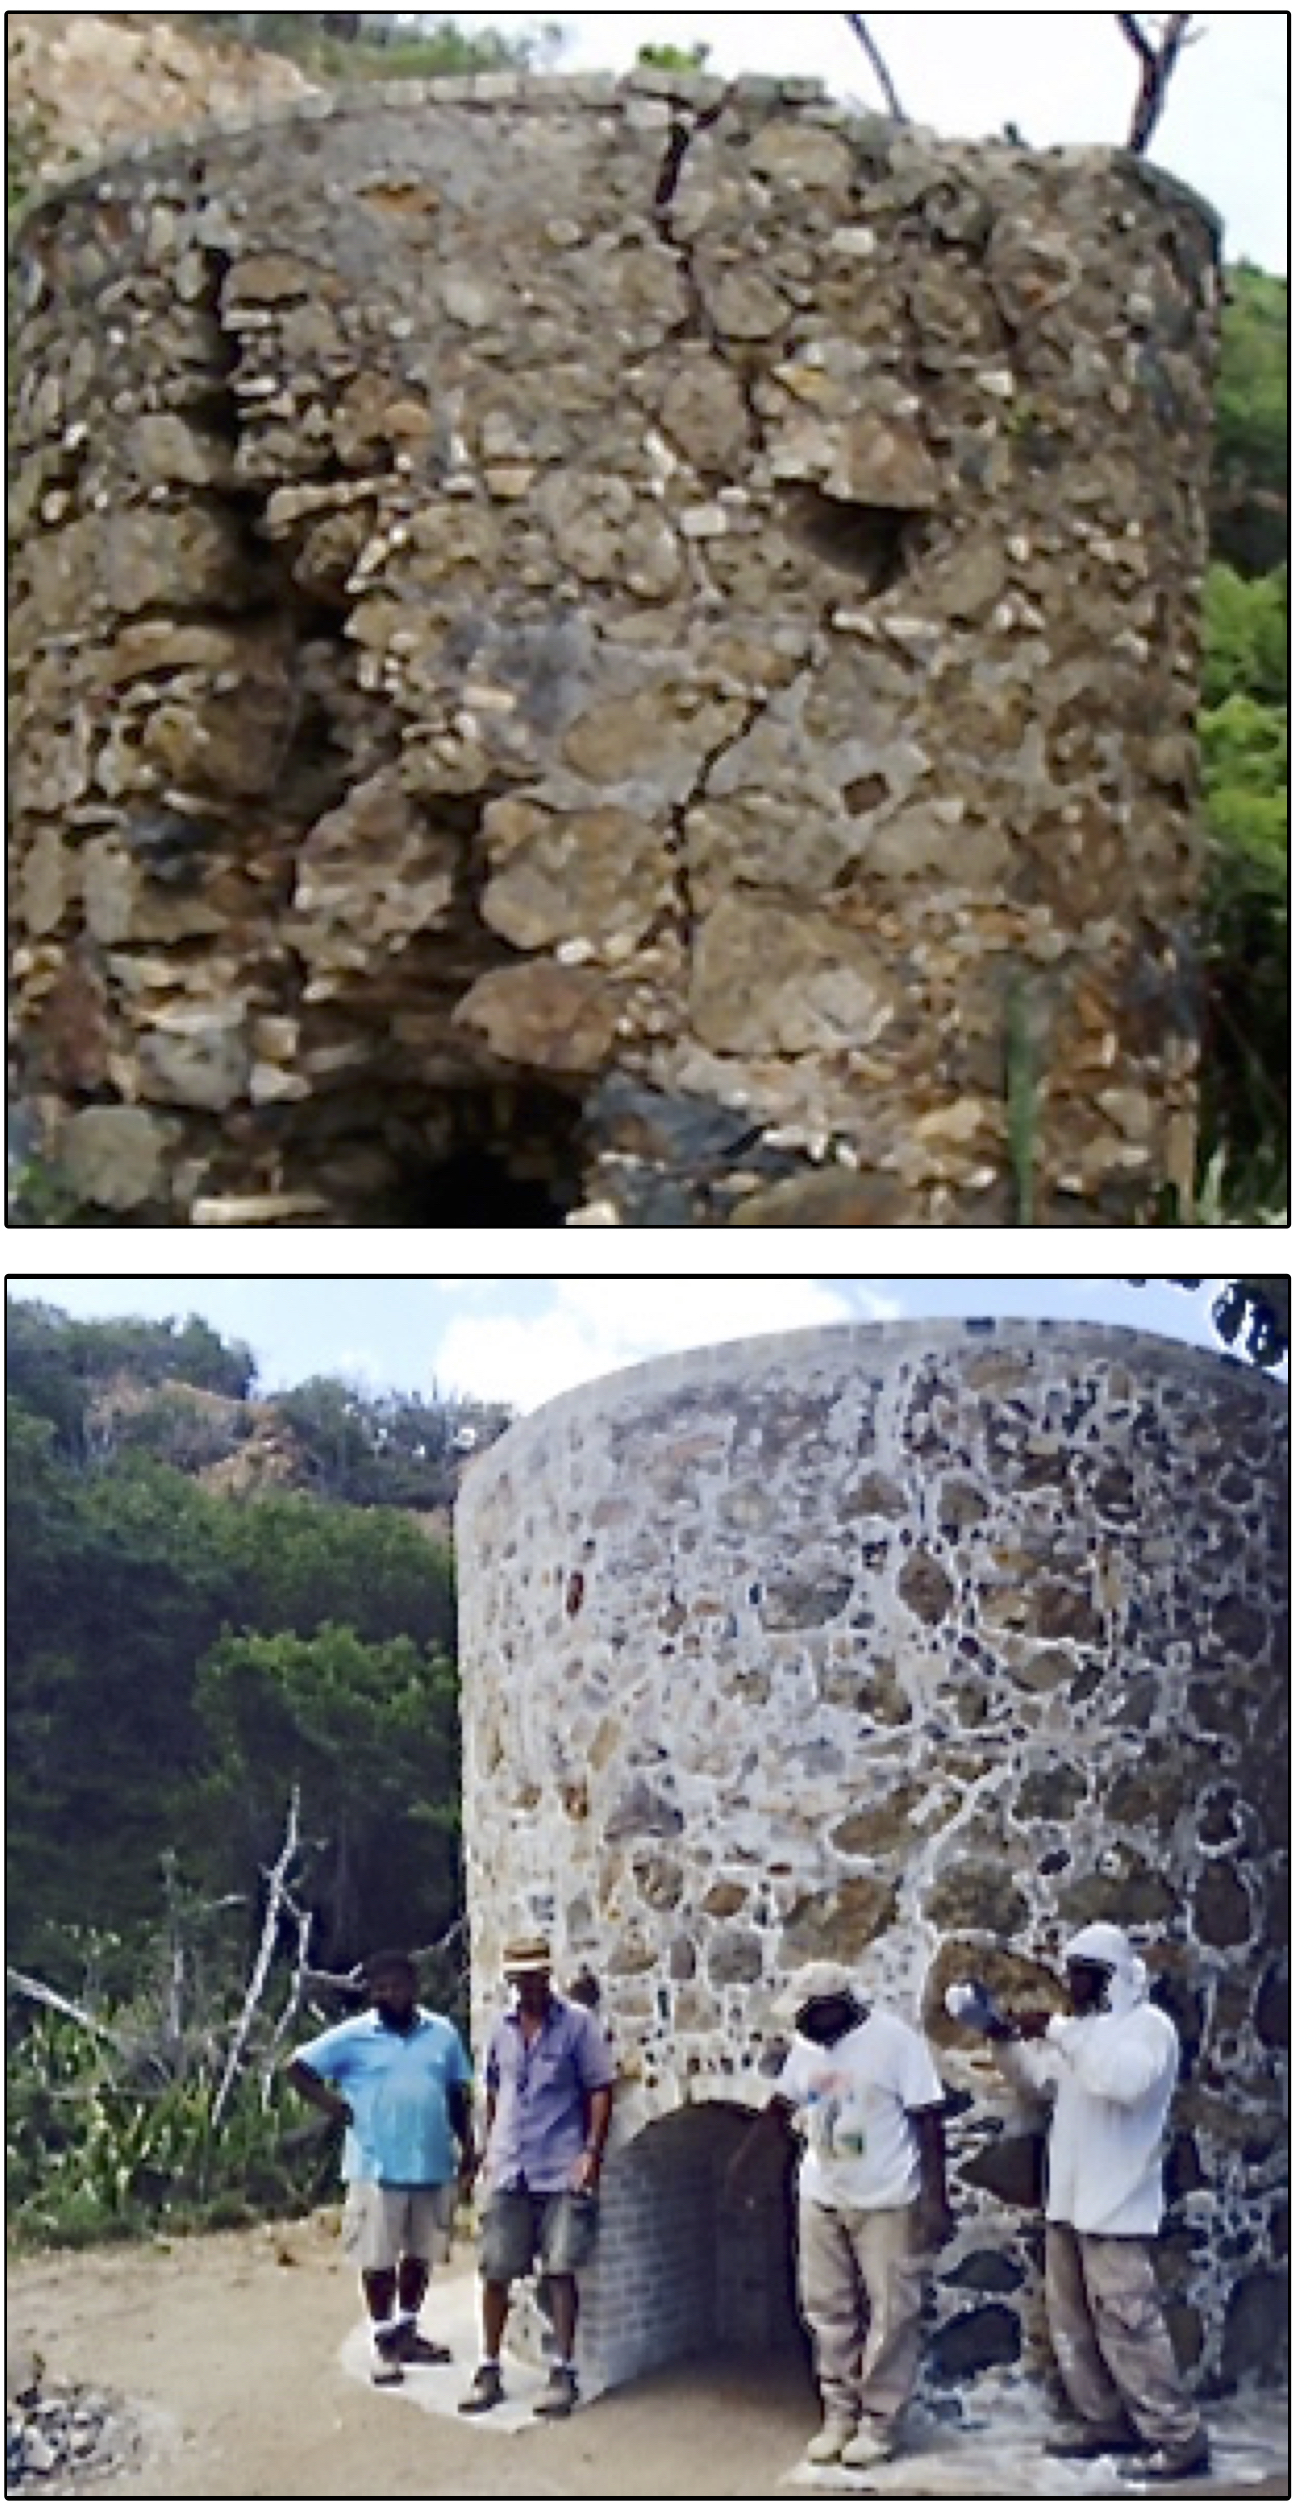 The Hassel Island lime kiln before it was repaired, aboive, and after the restoration. (Photos provided by the St. Thomas Historical Trust)